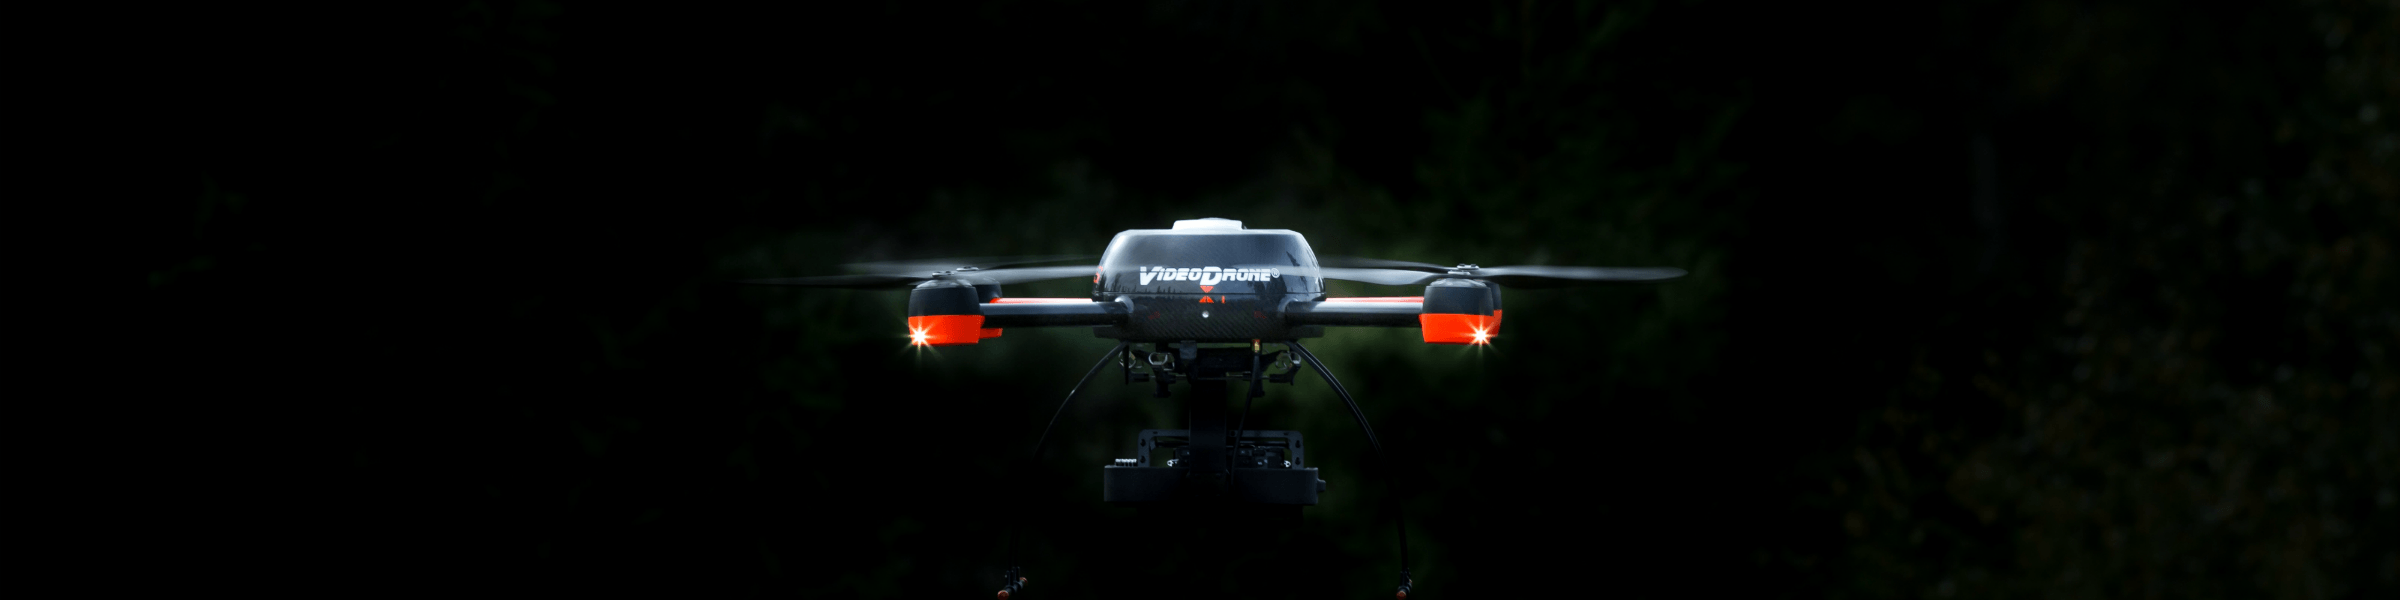 Video-Drone-Major-Consultancy-Services-Solutions-Hub